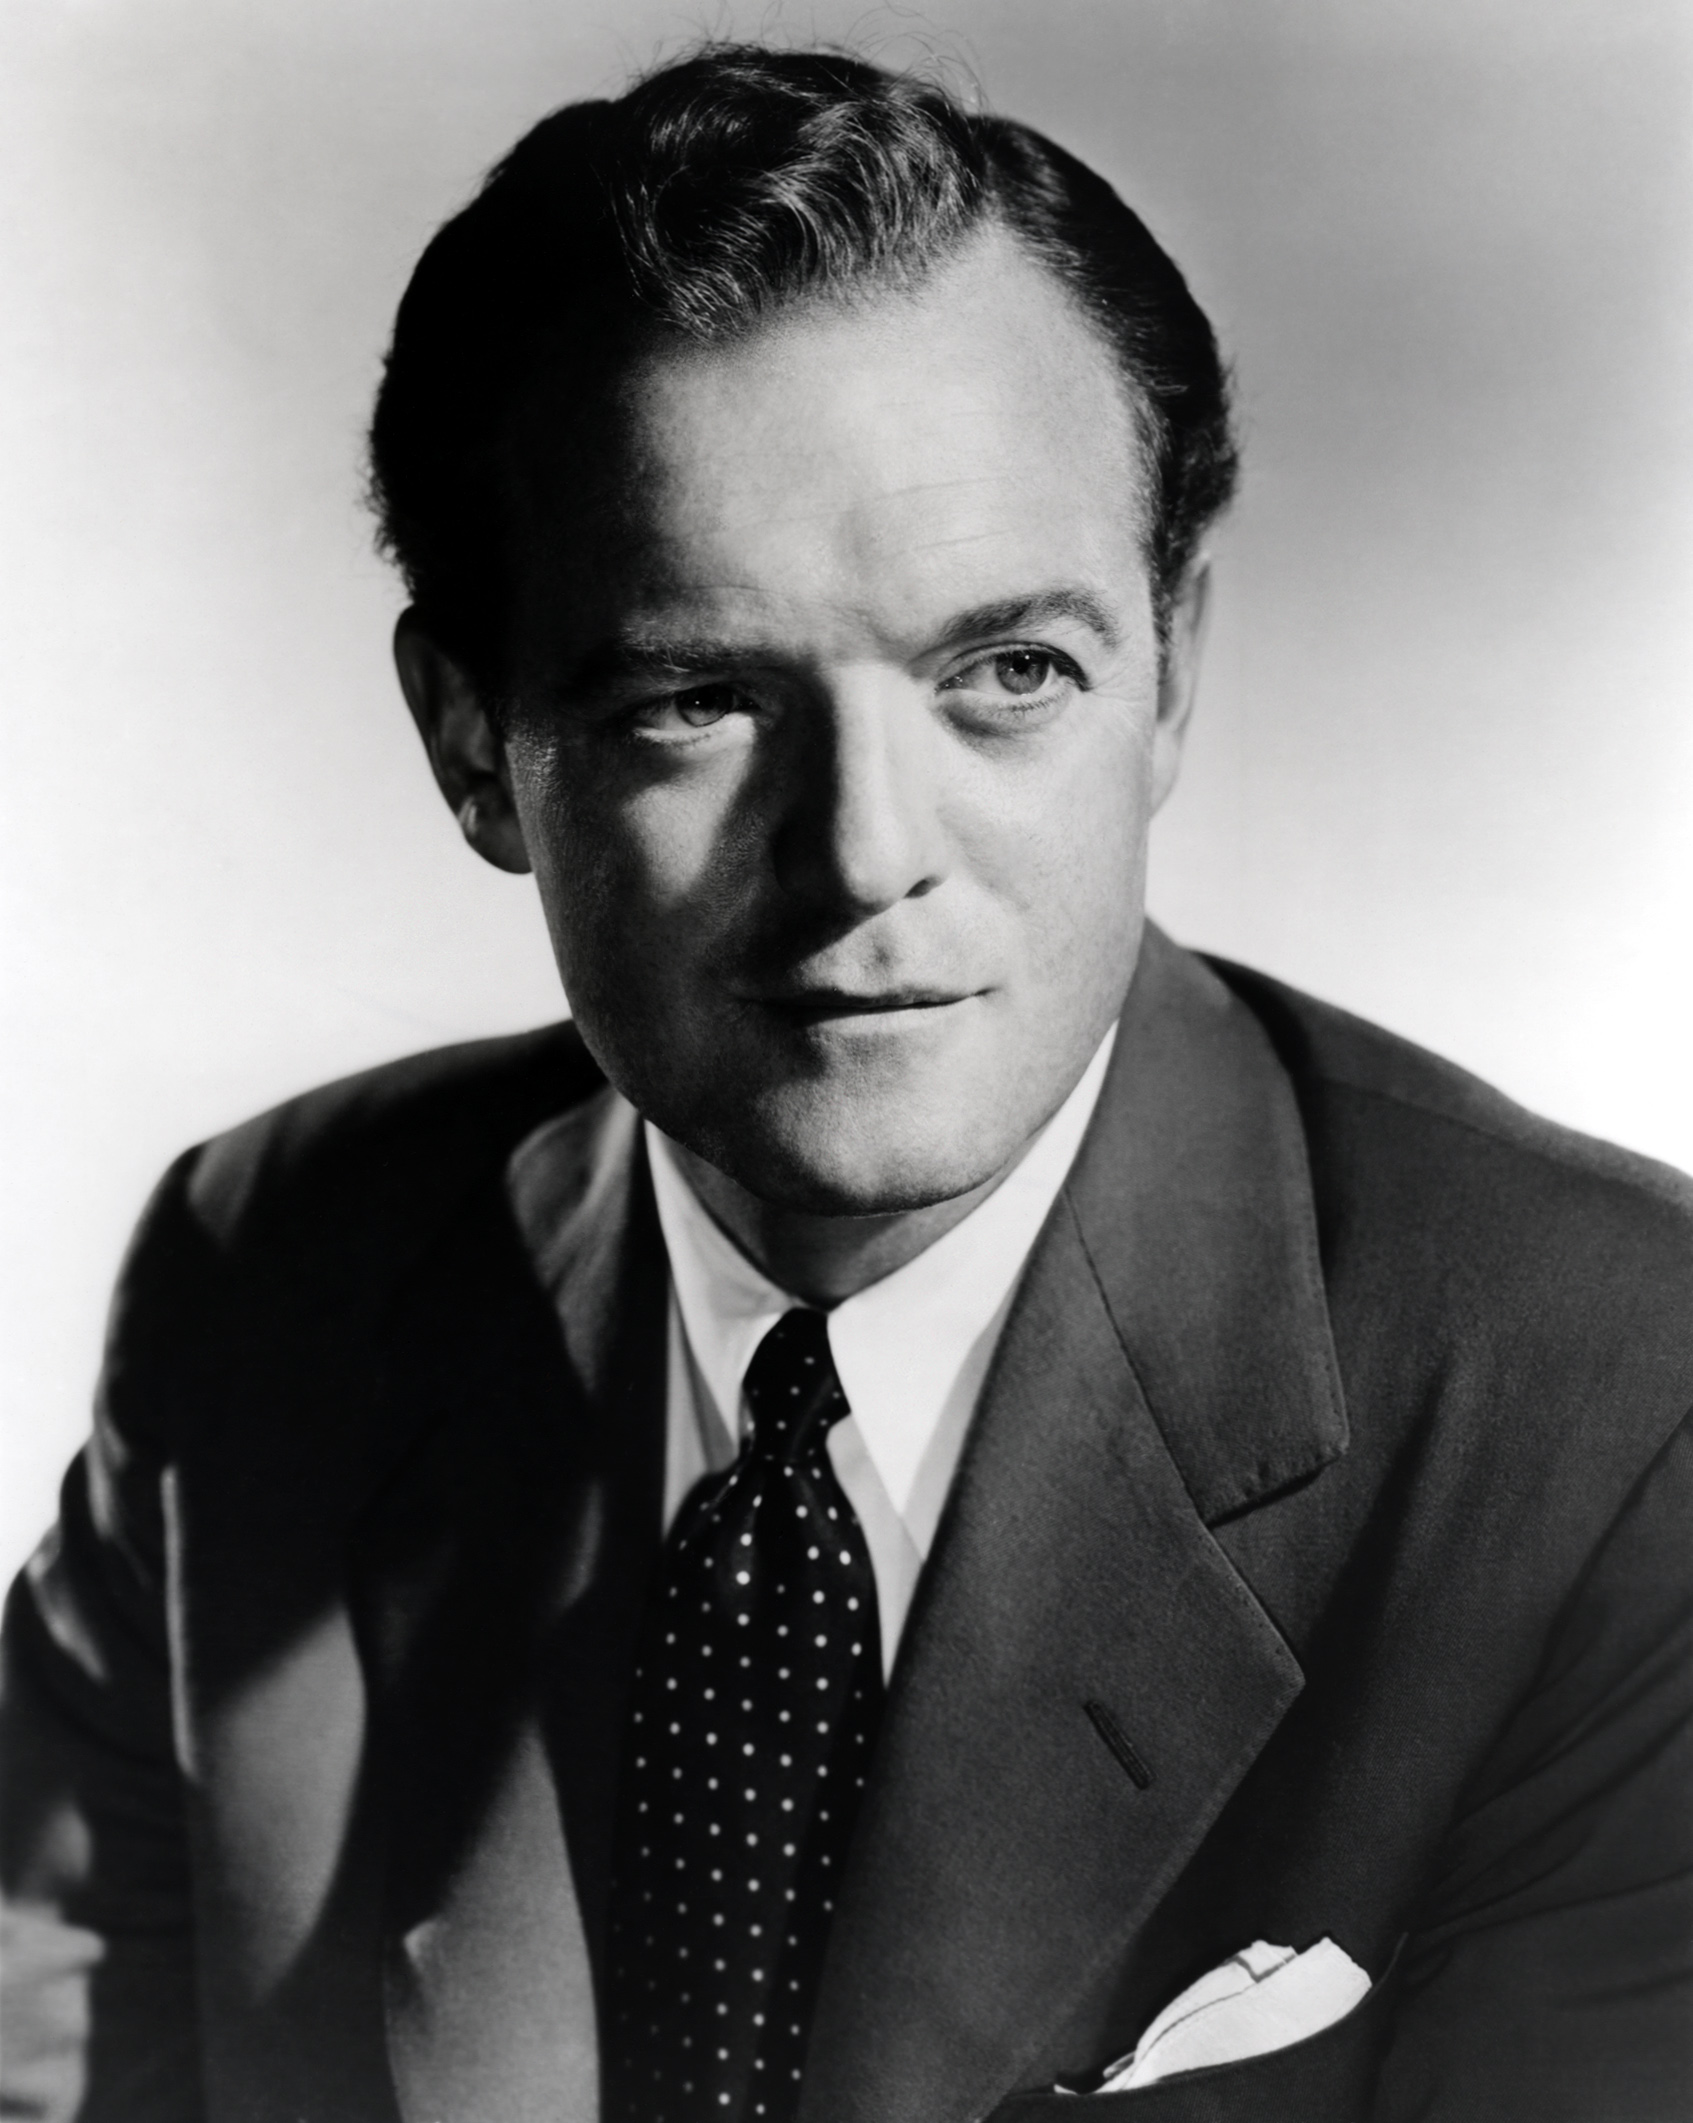 van heflin gravevan heflin imdb, van heflin, van heflin grave, van heflin bio, van heflin relationships, van heflin filmography, van heflin westerns, van heflin barbara stanwyck, van heflin find a grave, van heflin movies youtube, van heflin photos, van heflin gay, van heflin películas, van heflin filmografia, van heflin western movies, van heflin net worth, van heflin the raid